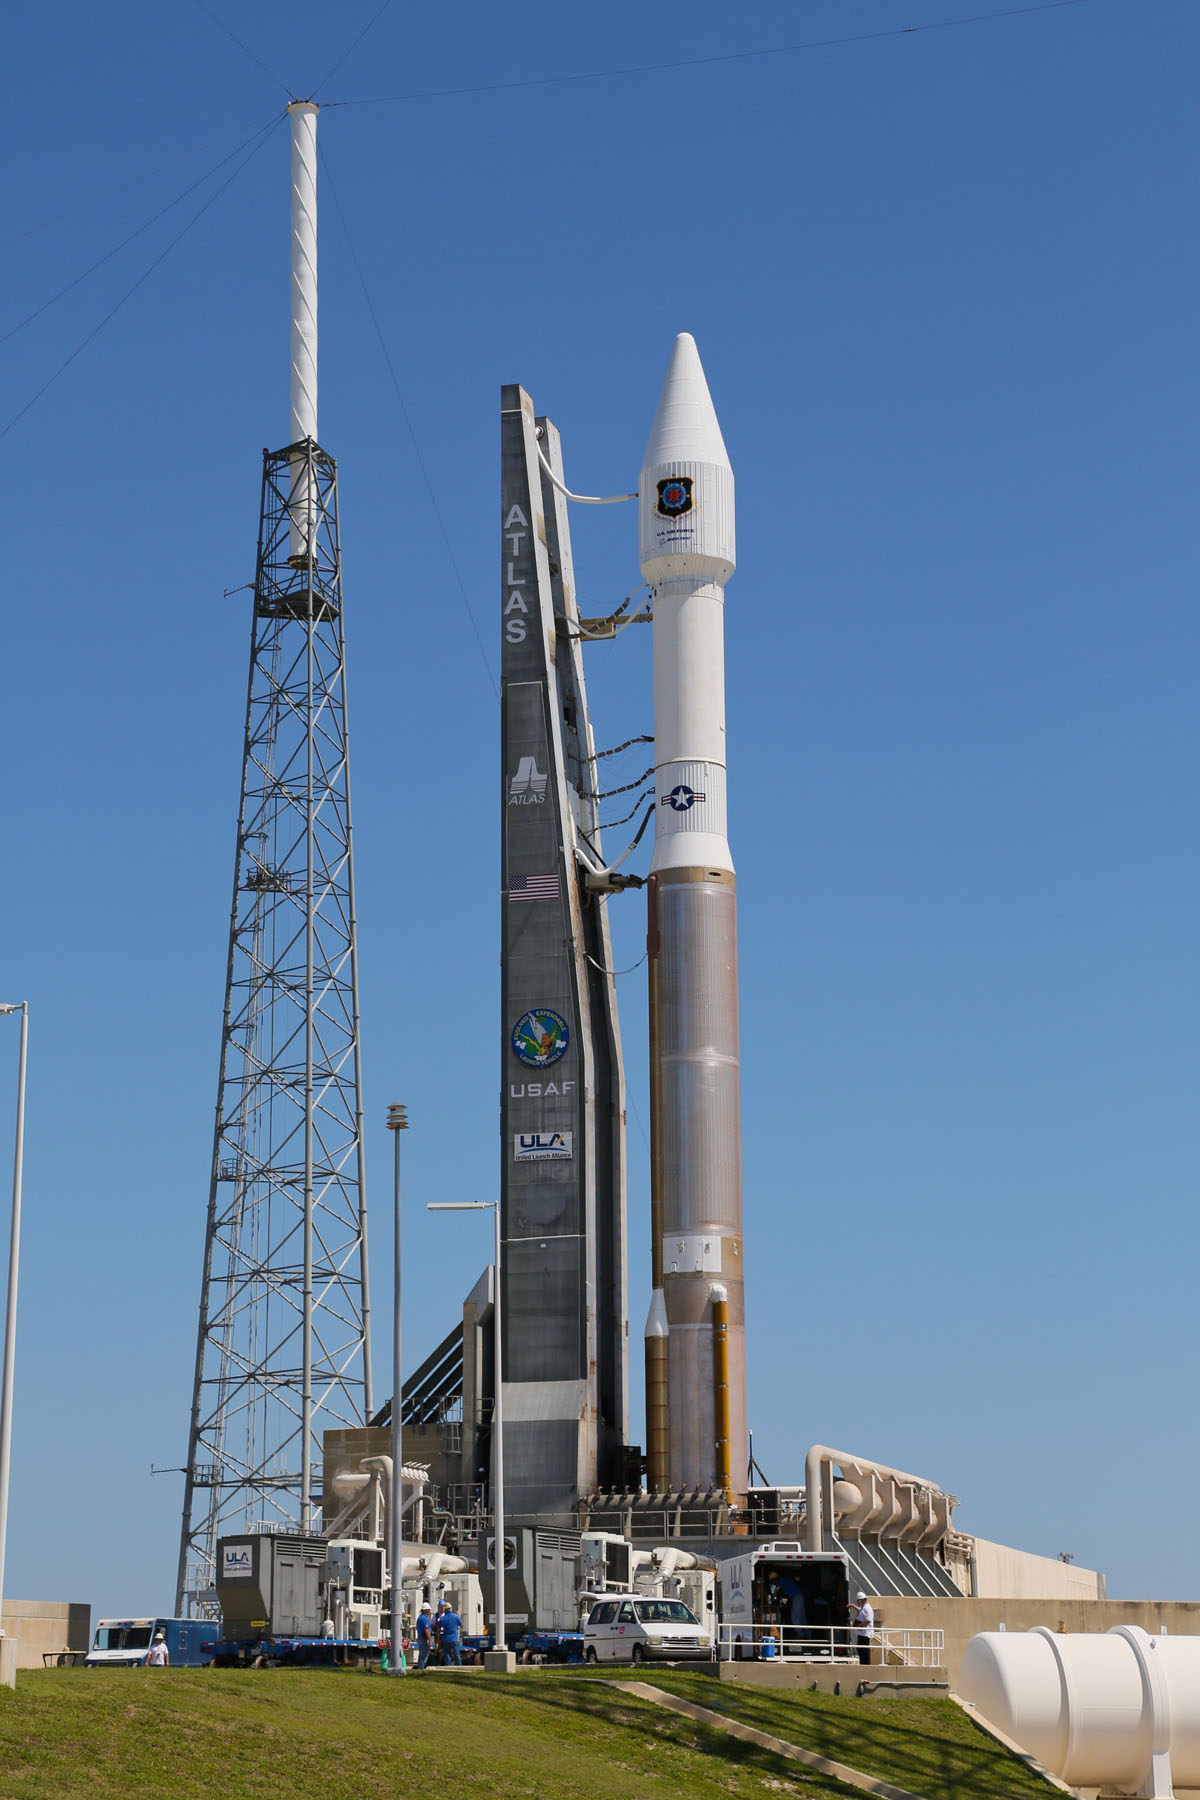 Atlas V GPS 2F-4 at the Launch Pad